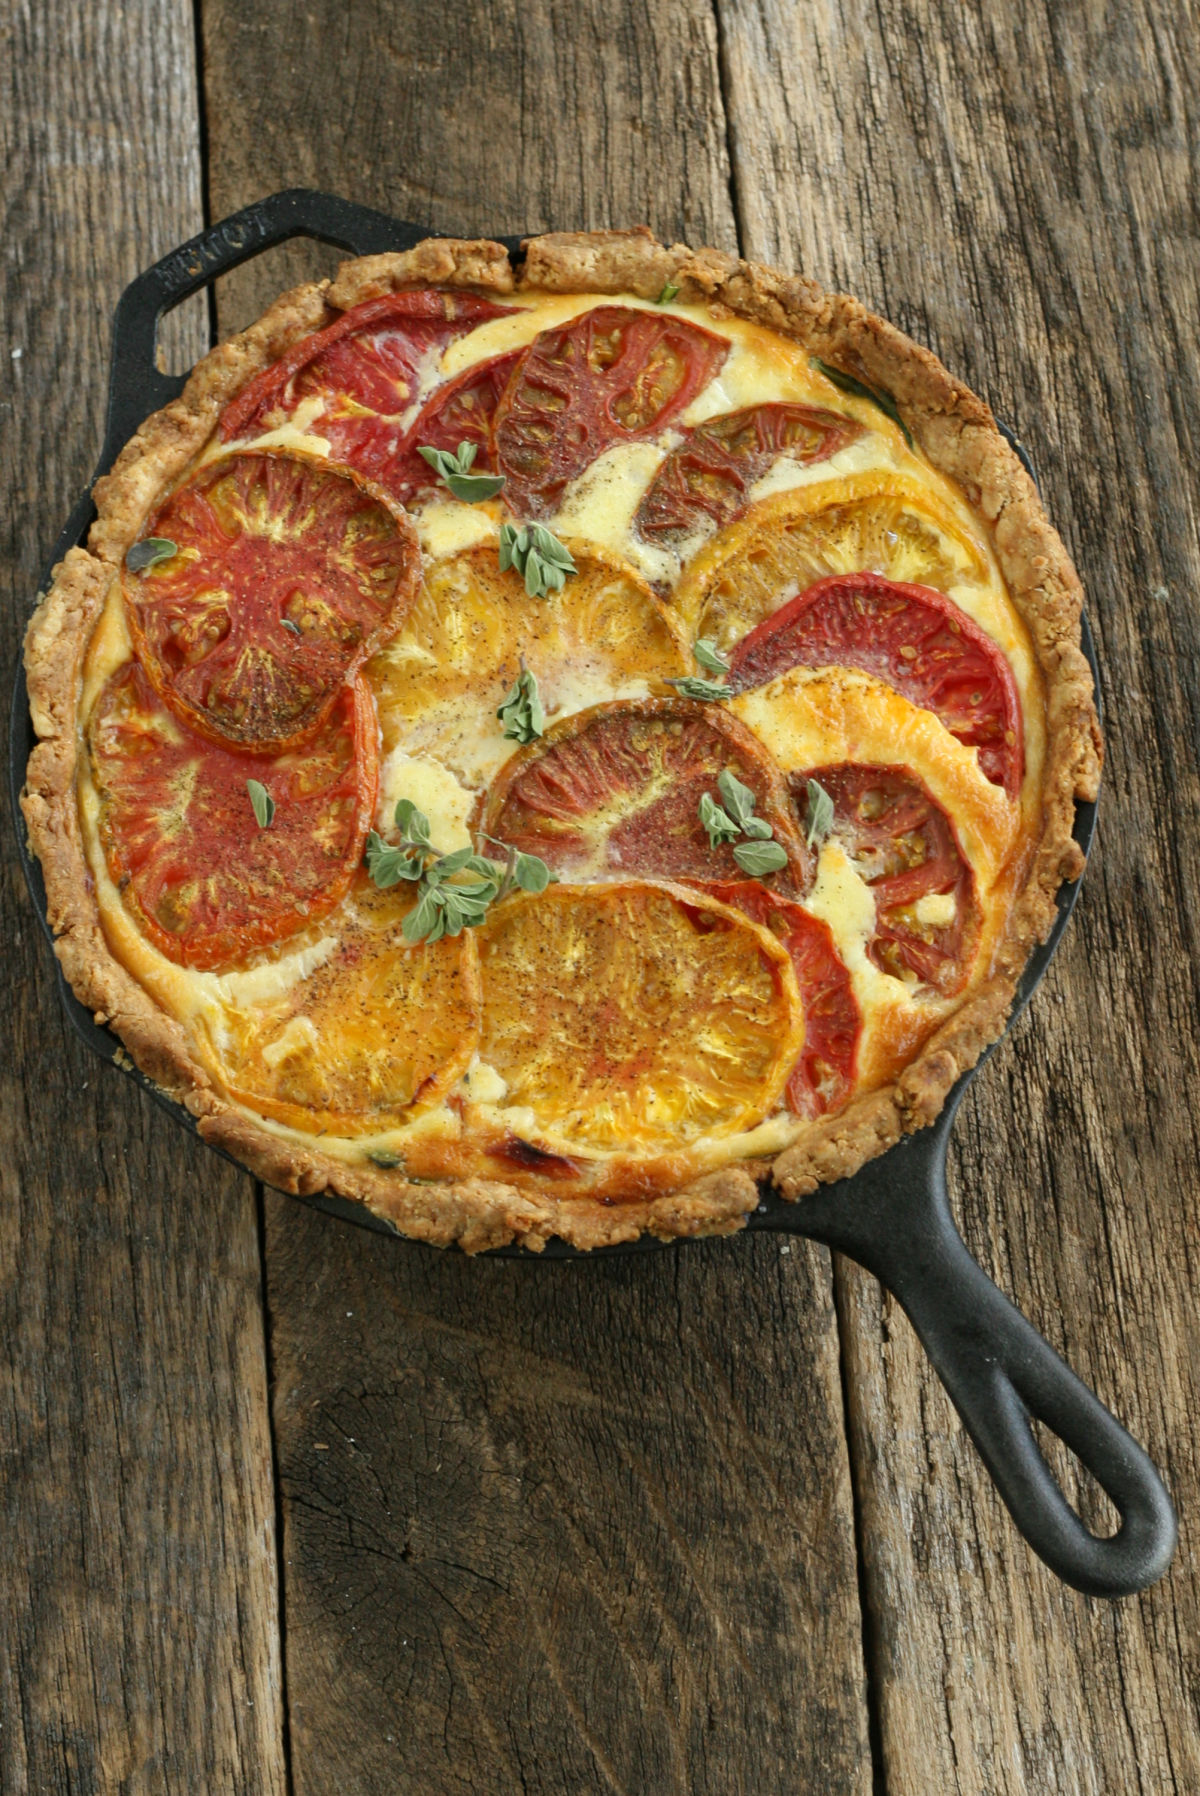 baked quiche in a cast iron skillet with heirloom tomatoes and spinach.